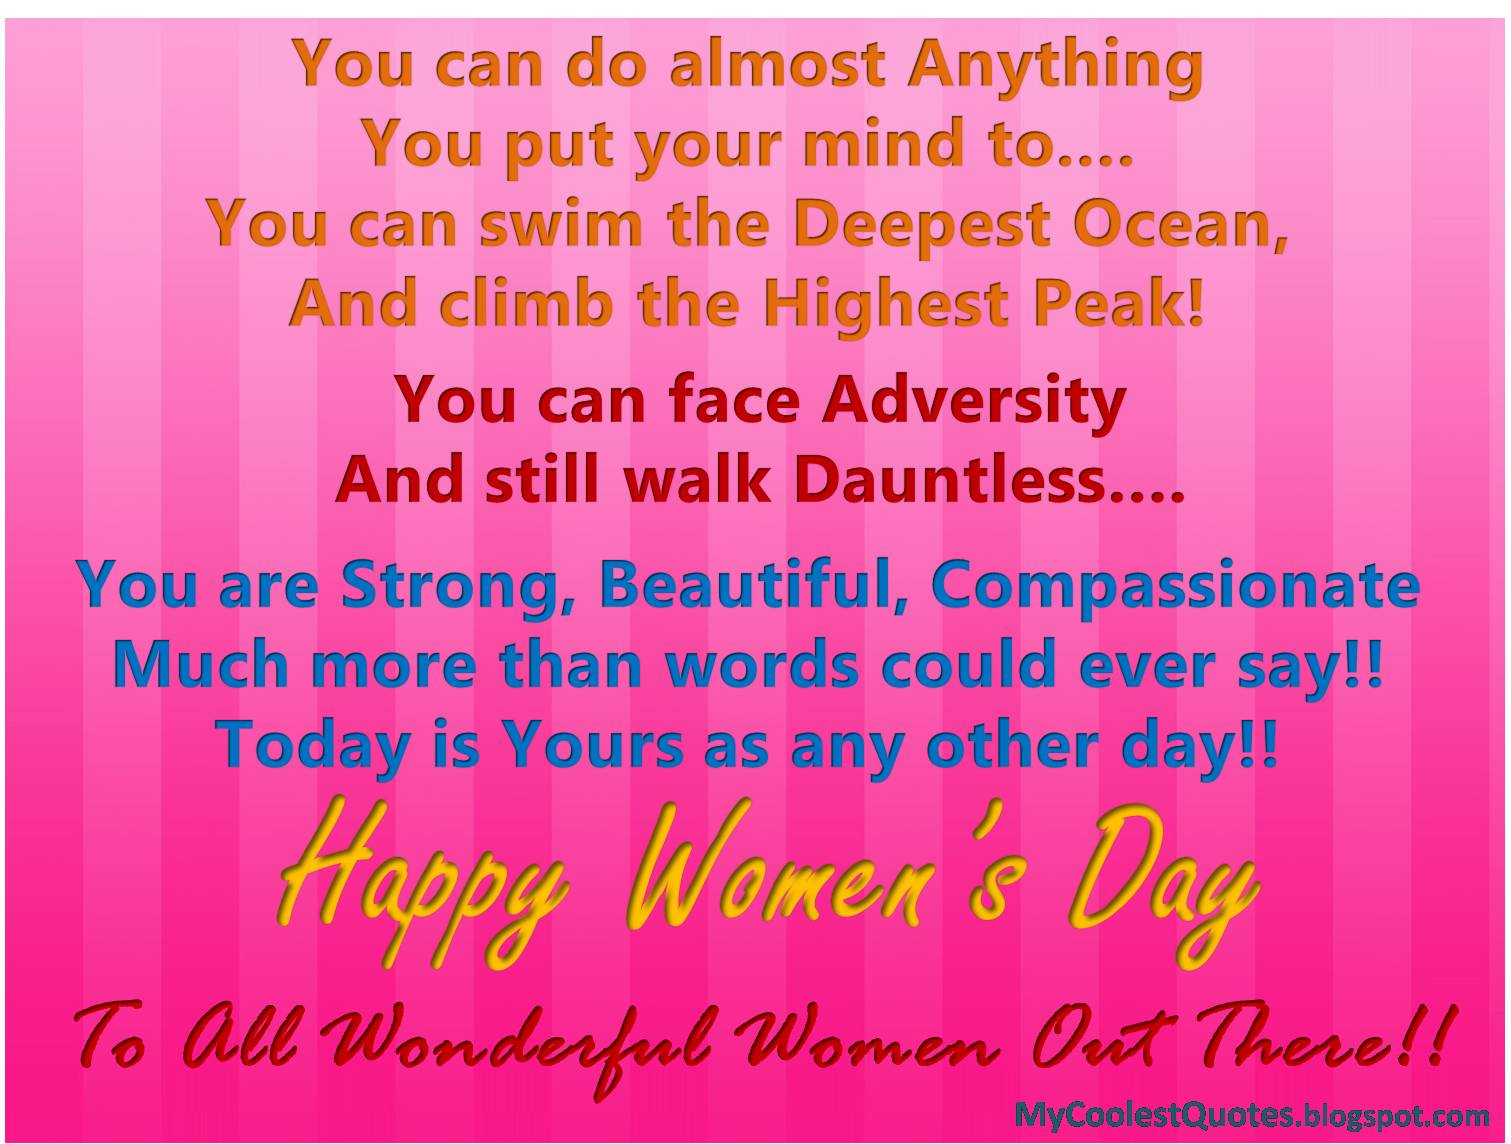 Funny Quotes Womens Day. QuotesGram